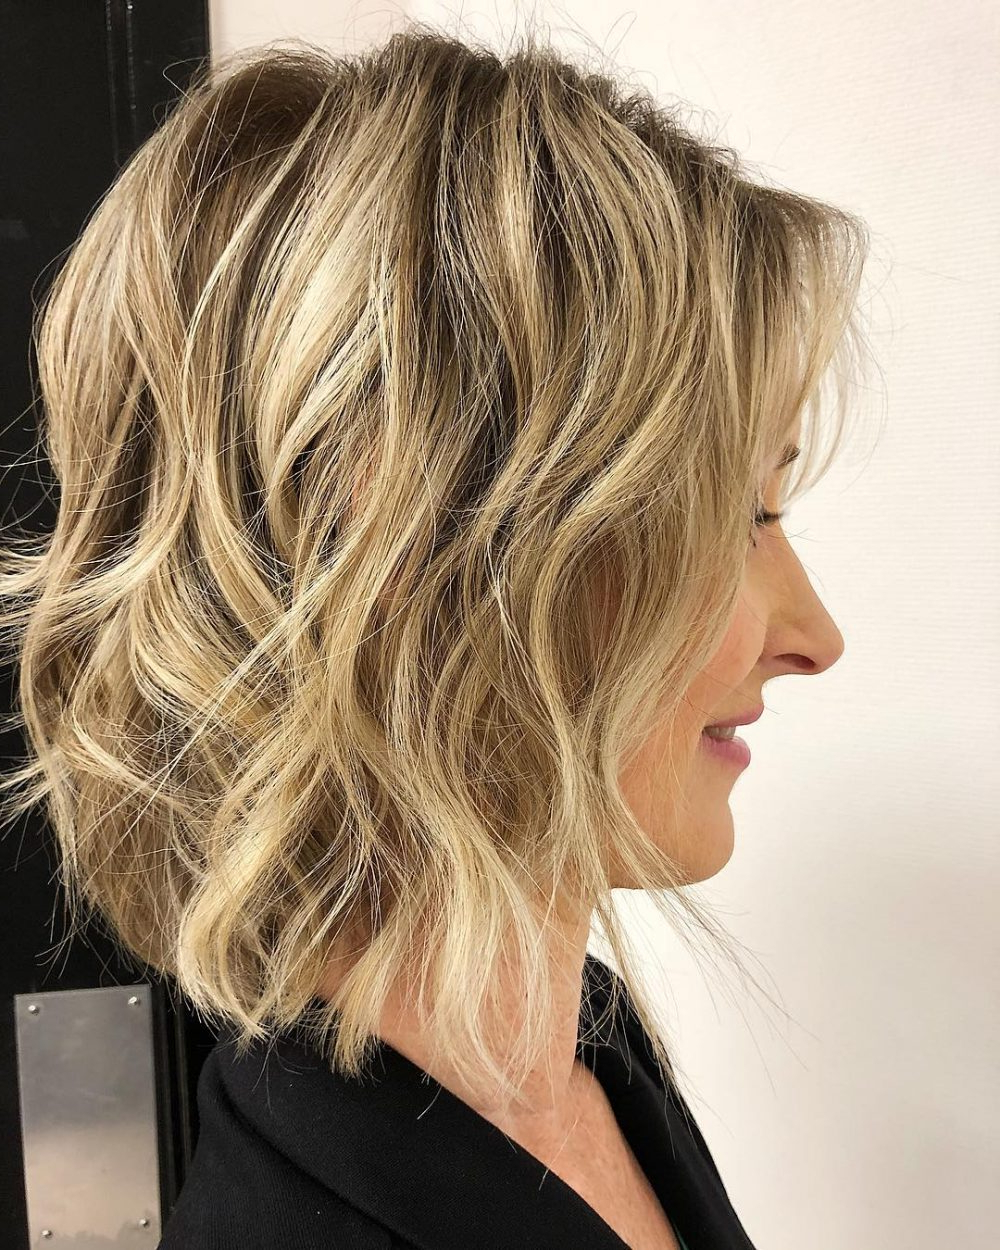 43 Perfect Short Hairstyles For Fine Hair In 2018 Intended For Easy Care Short Hairstyles For Fine Hair (View 12 of 25)